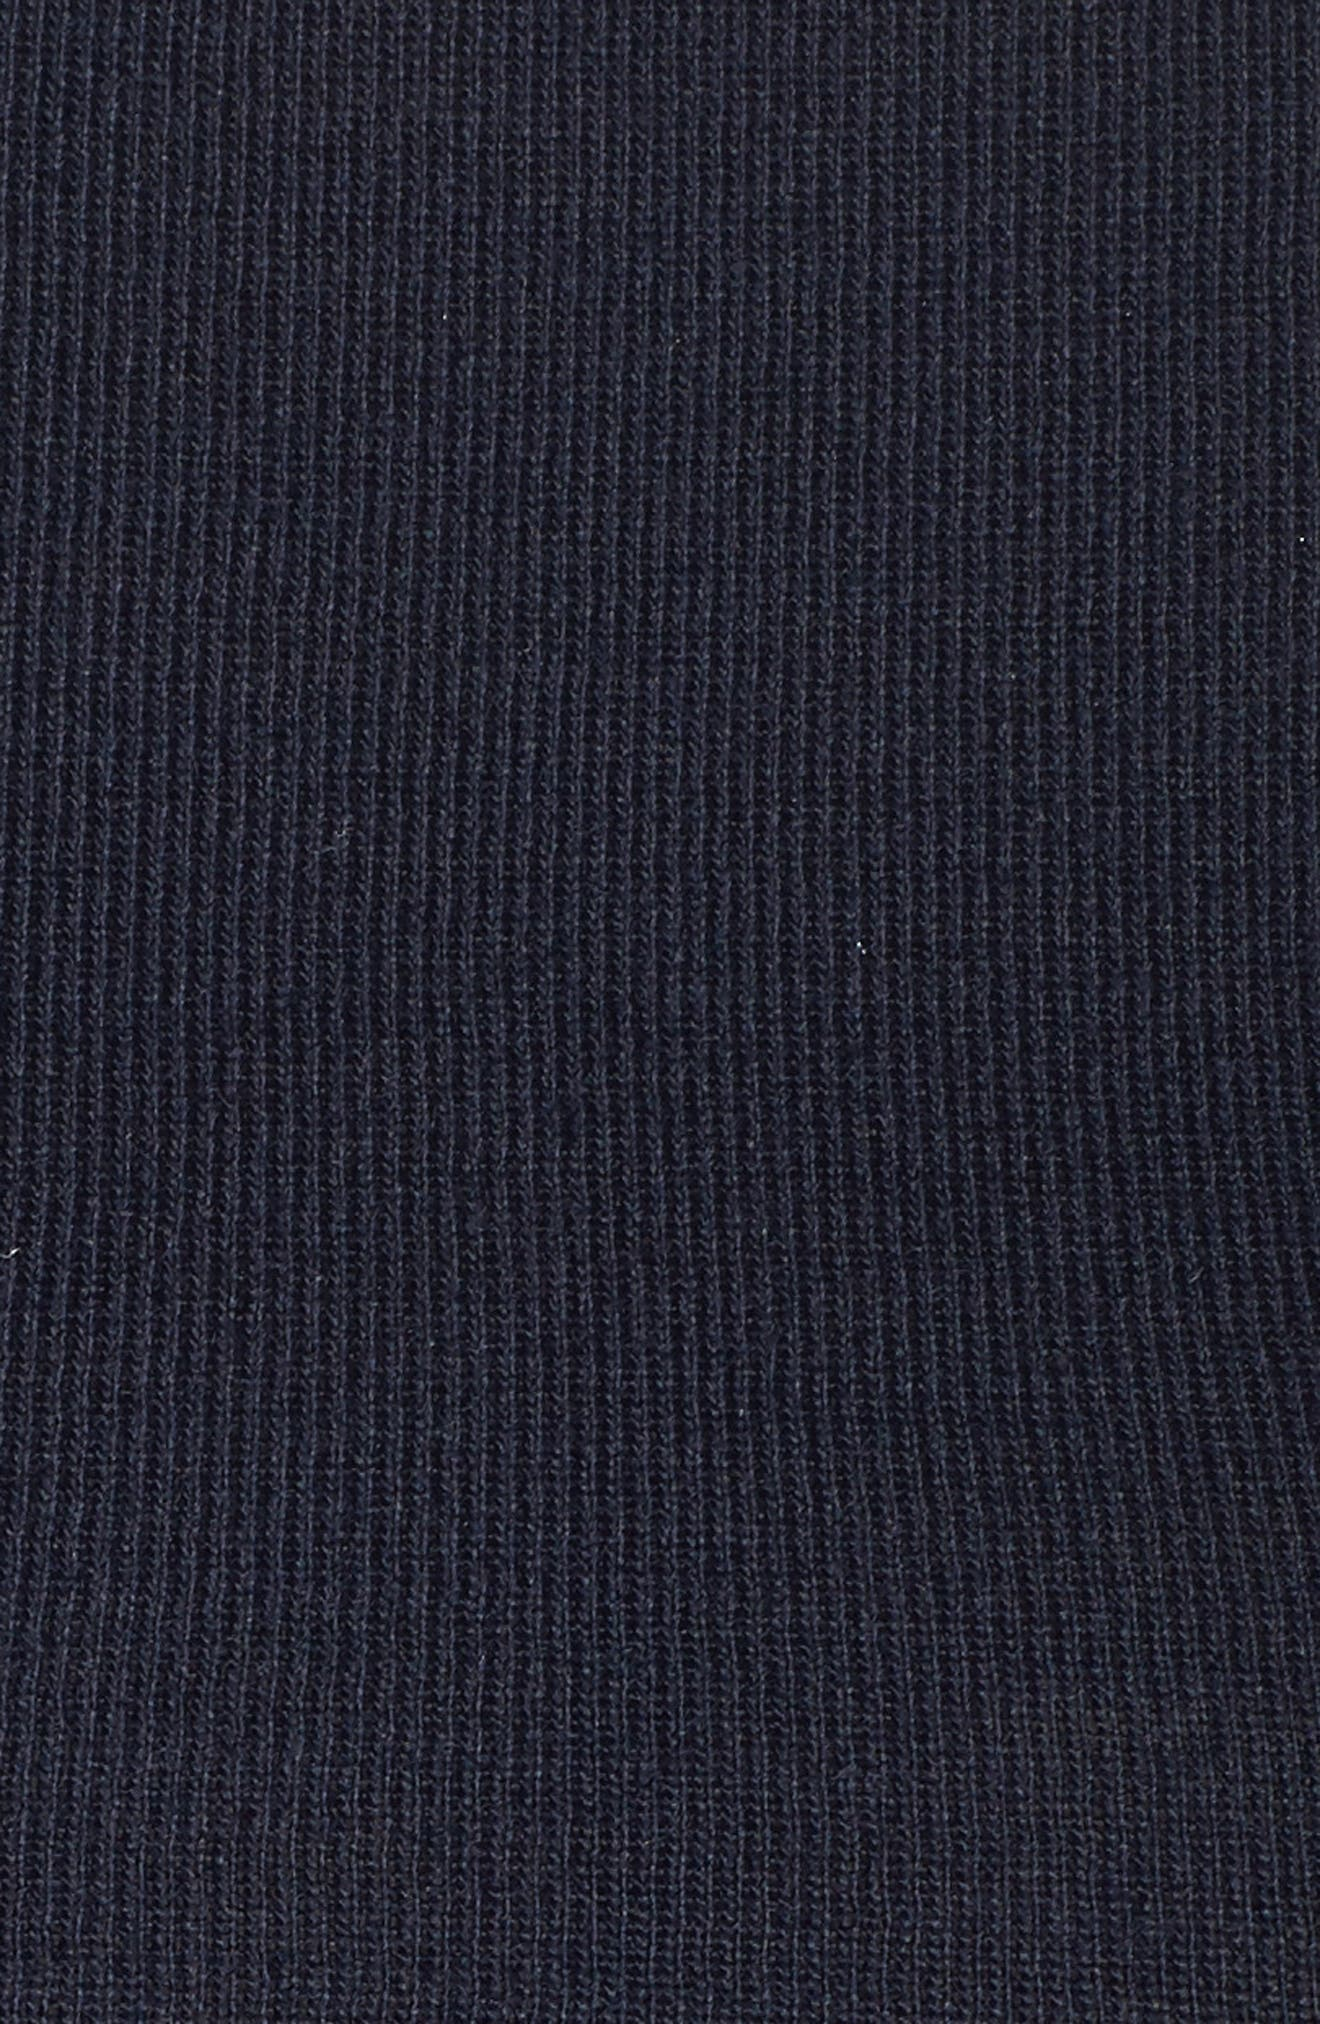 Smocked Chiffon Contrast Sweater,                             Alternate thumbnail 5, color,                             Navy